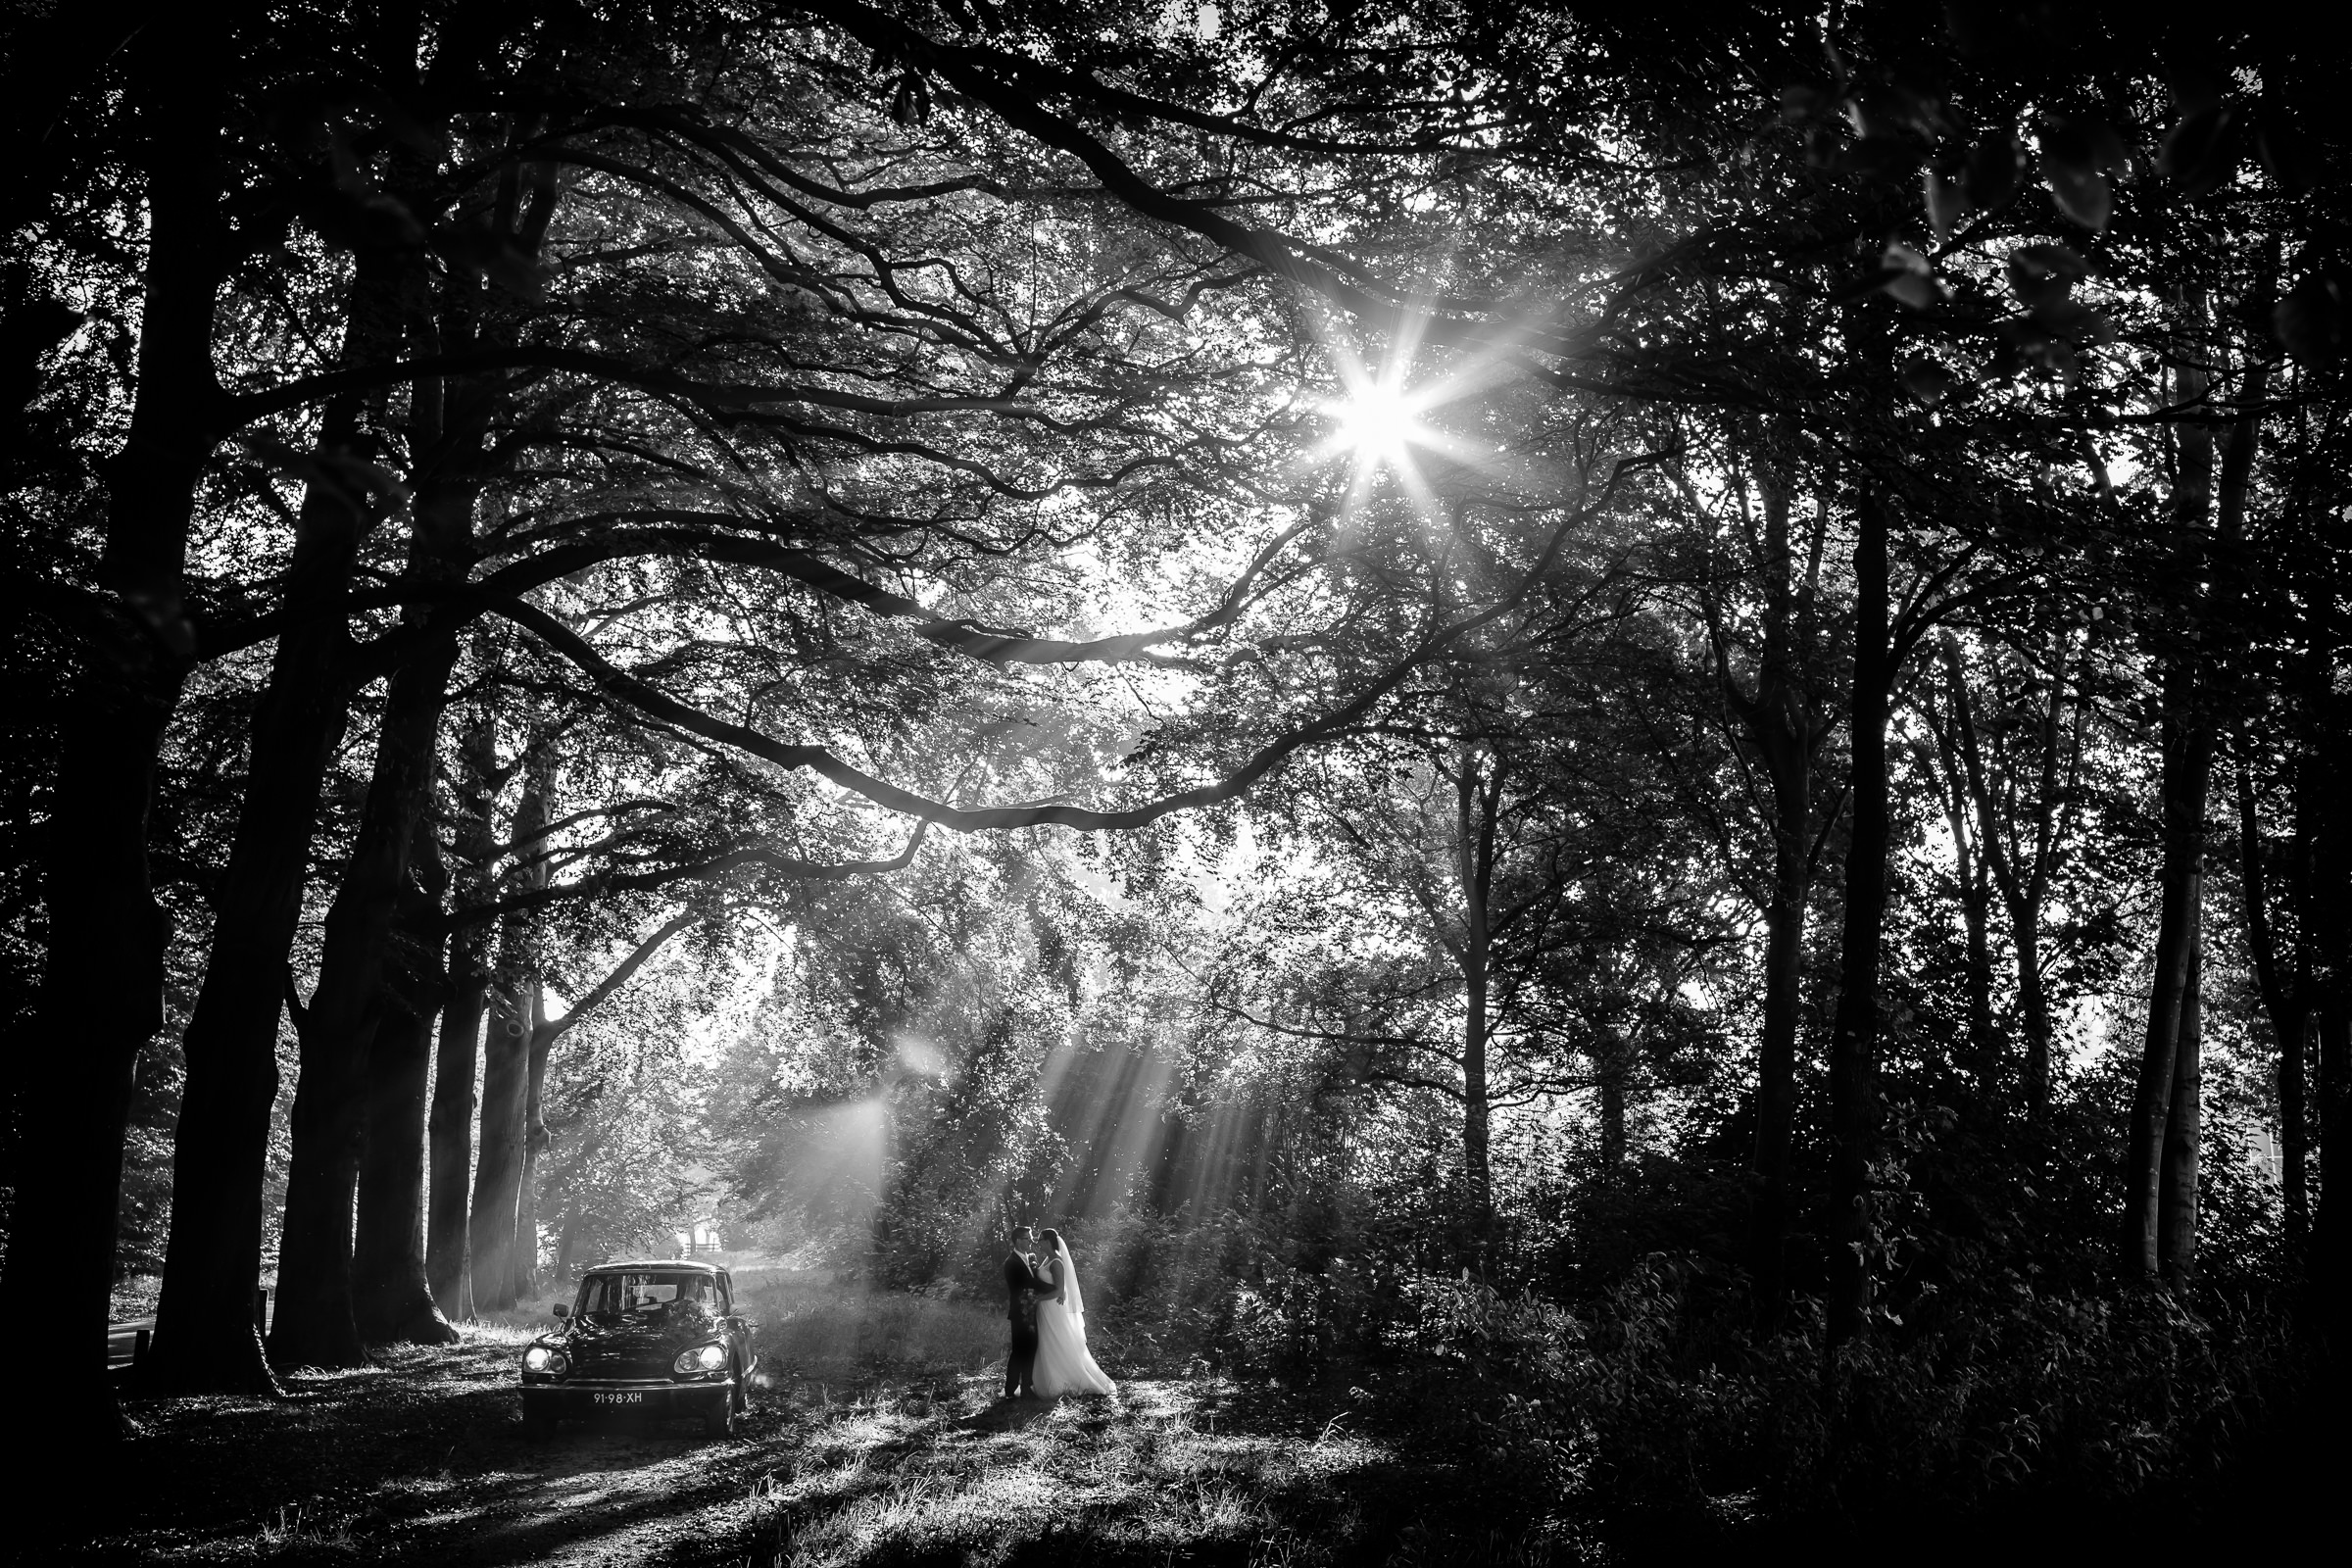 Couple under sun rays in forest - photo by Peter van der Lingen Wedding Photography